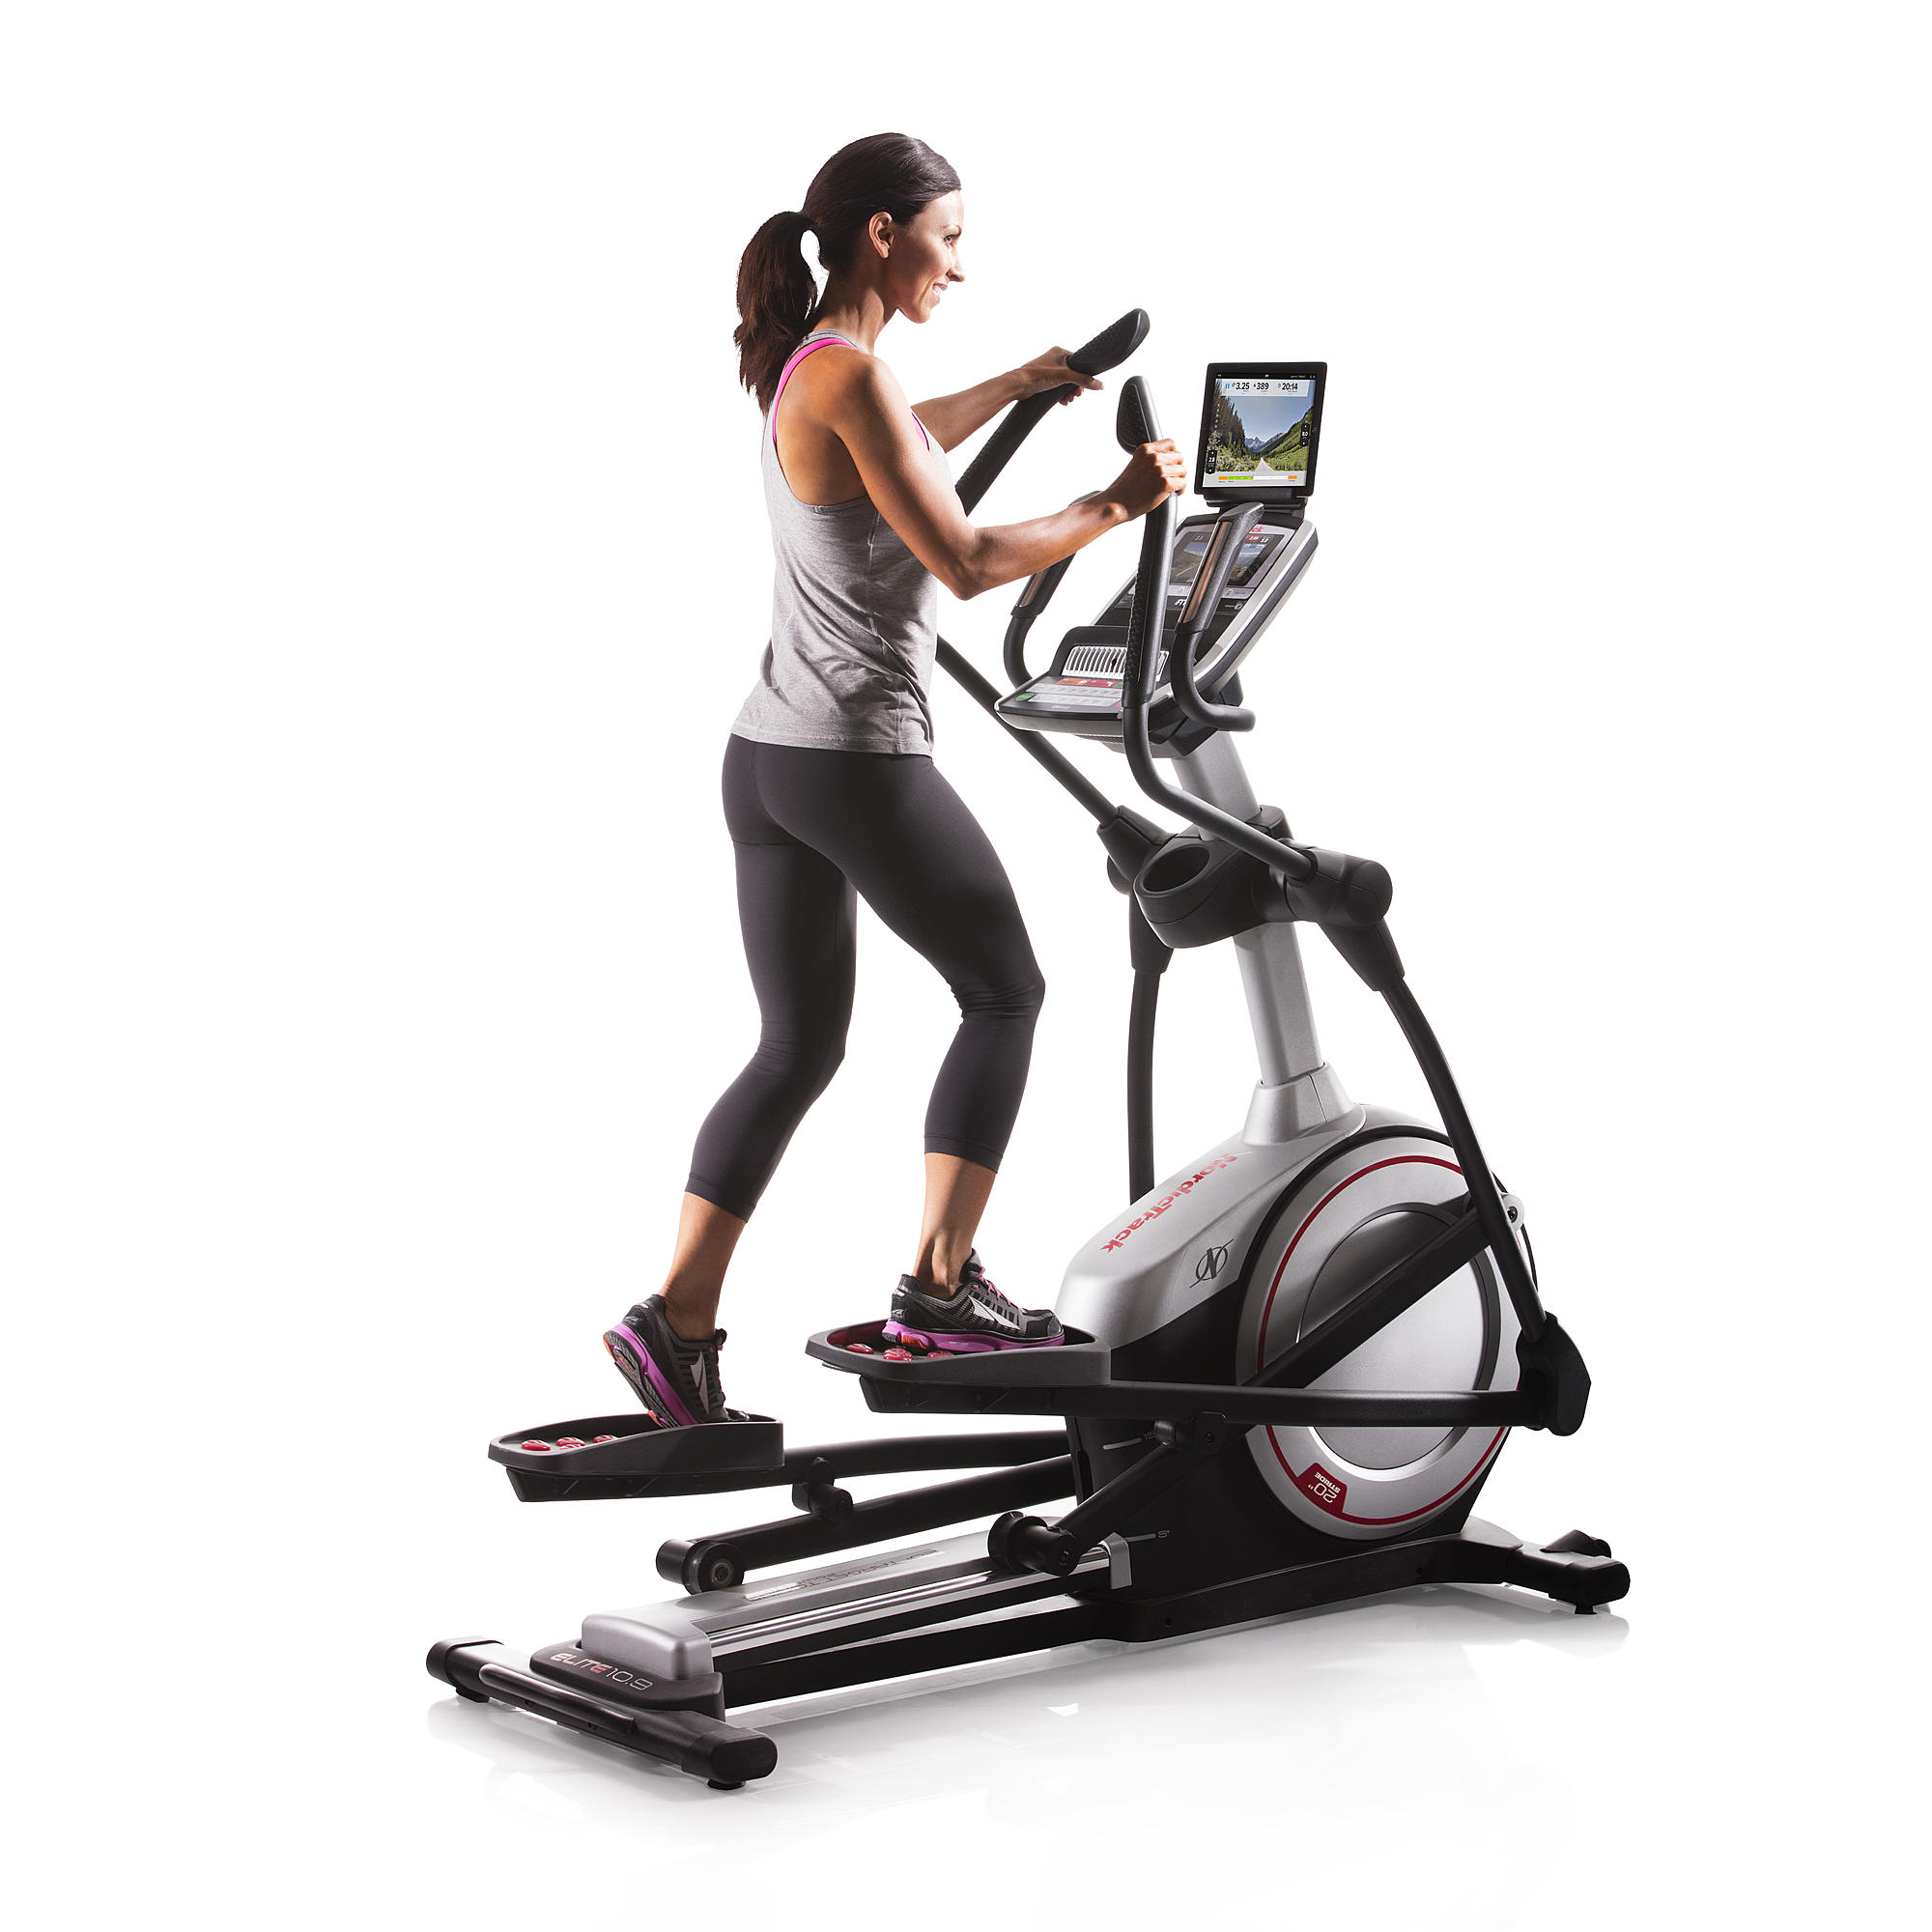 Common elliptical problems - console won't turn on | Symptom diagnosis